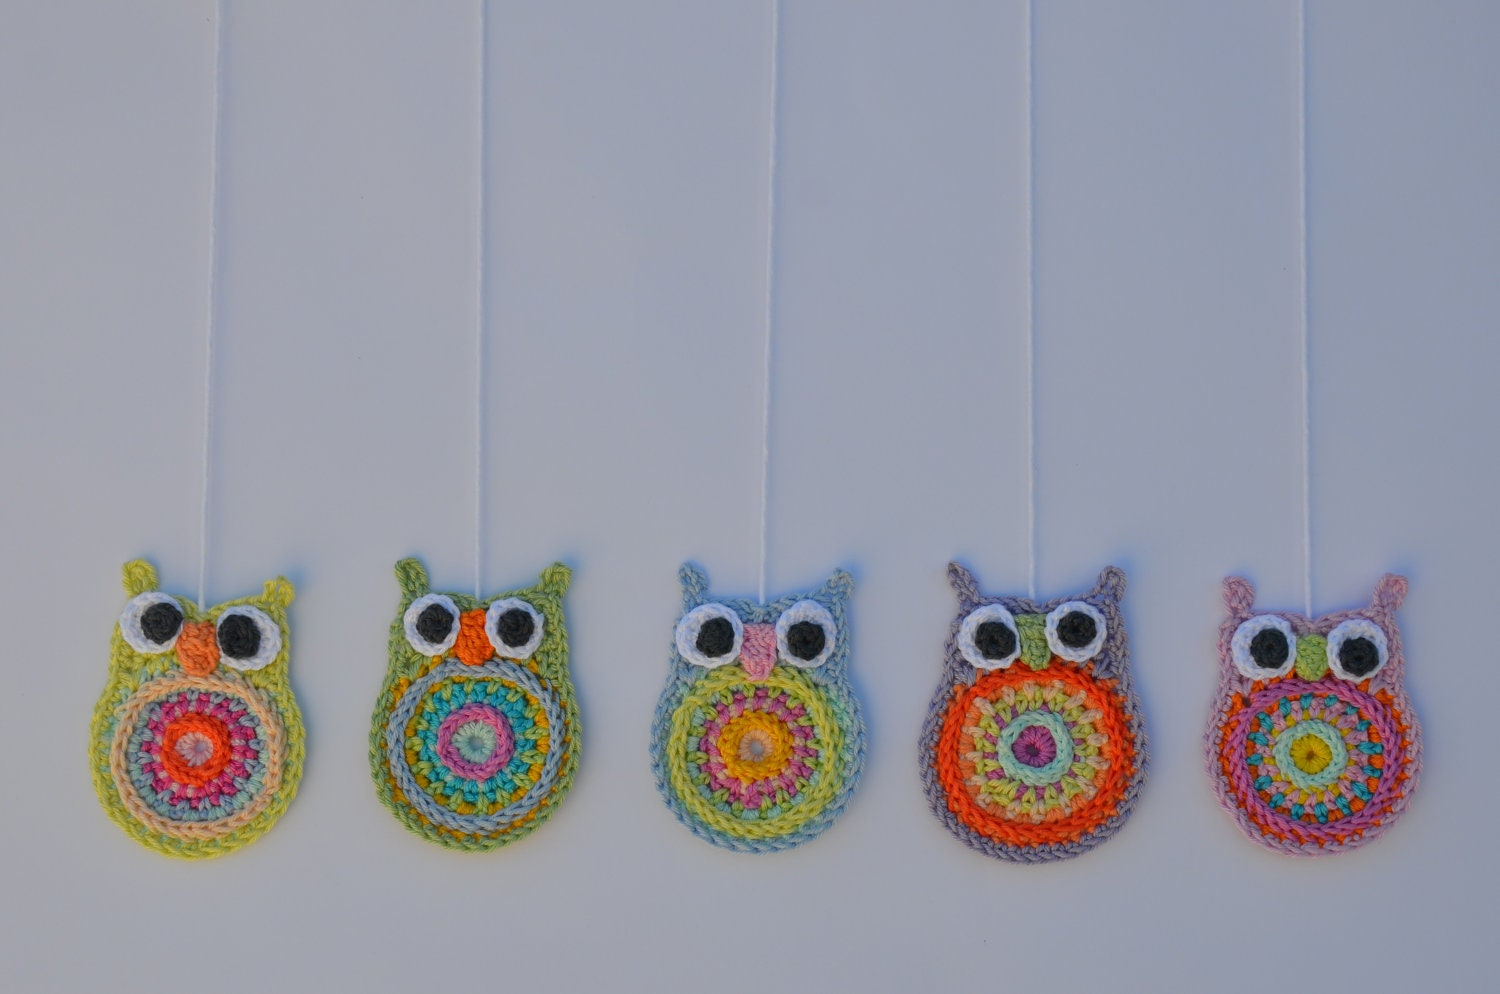 Crochet Owl Decoration - Choose One